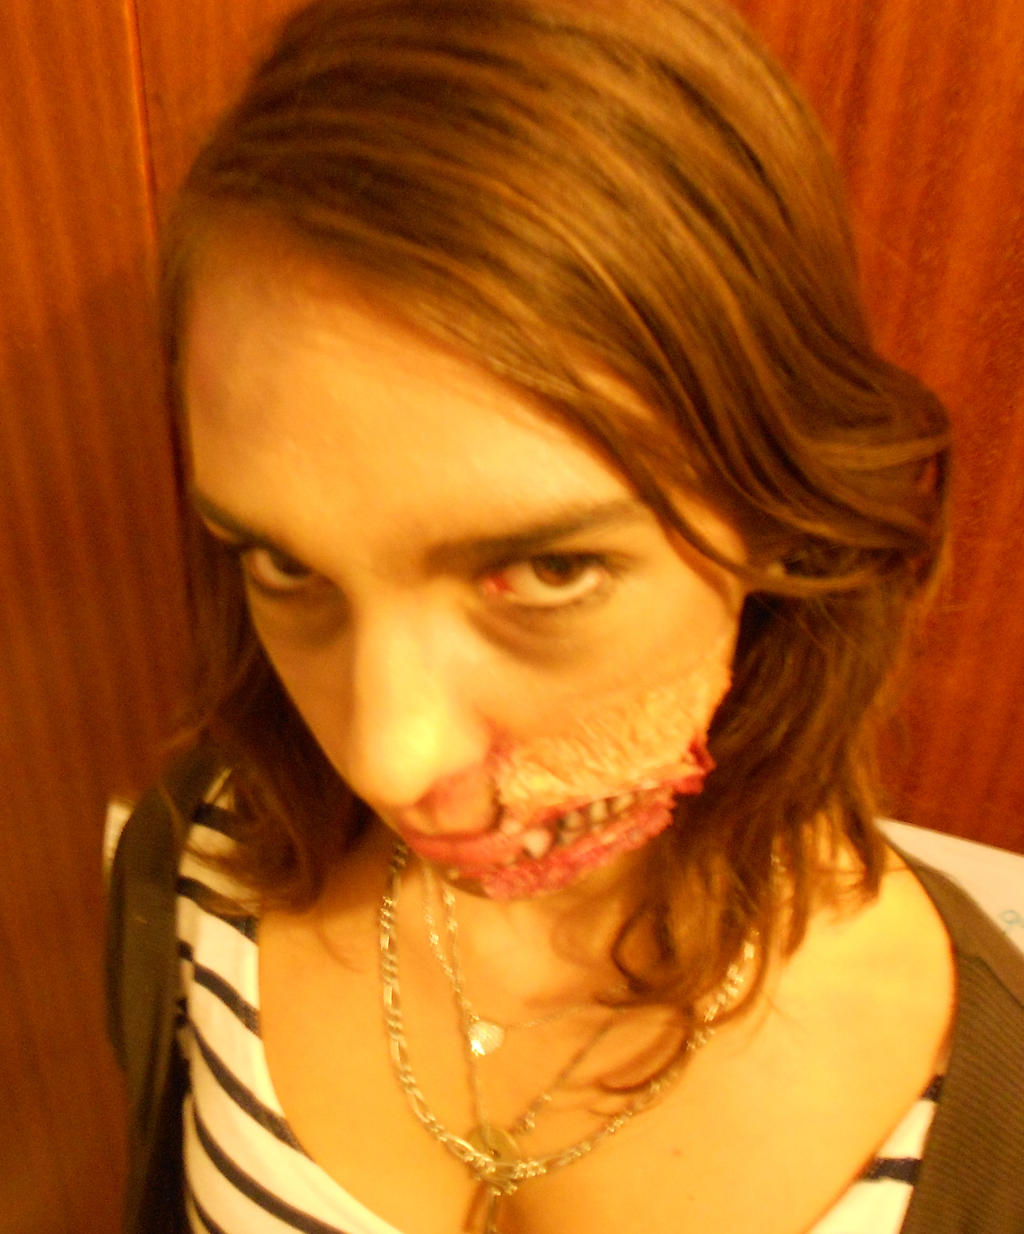 zombi makeup 2 by spectra-night